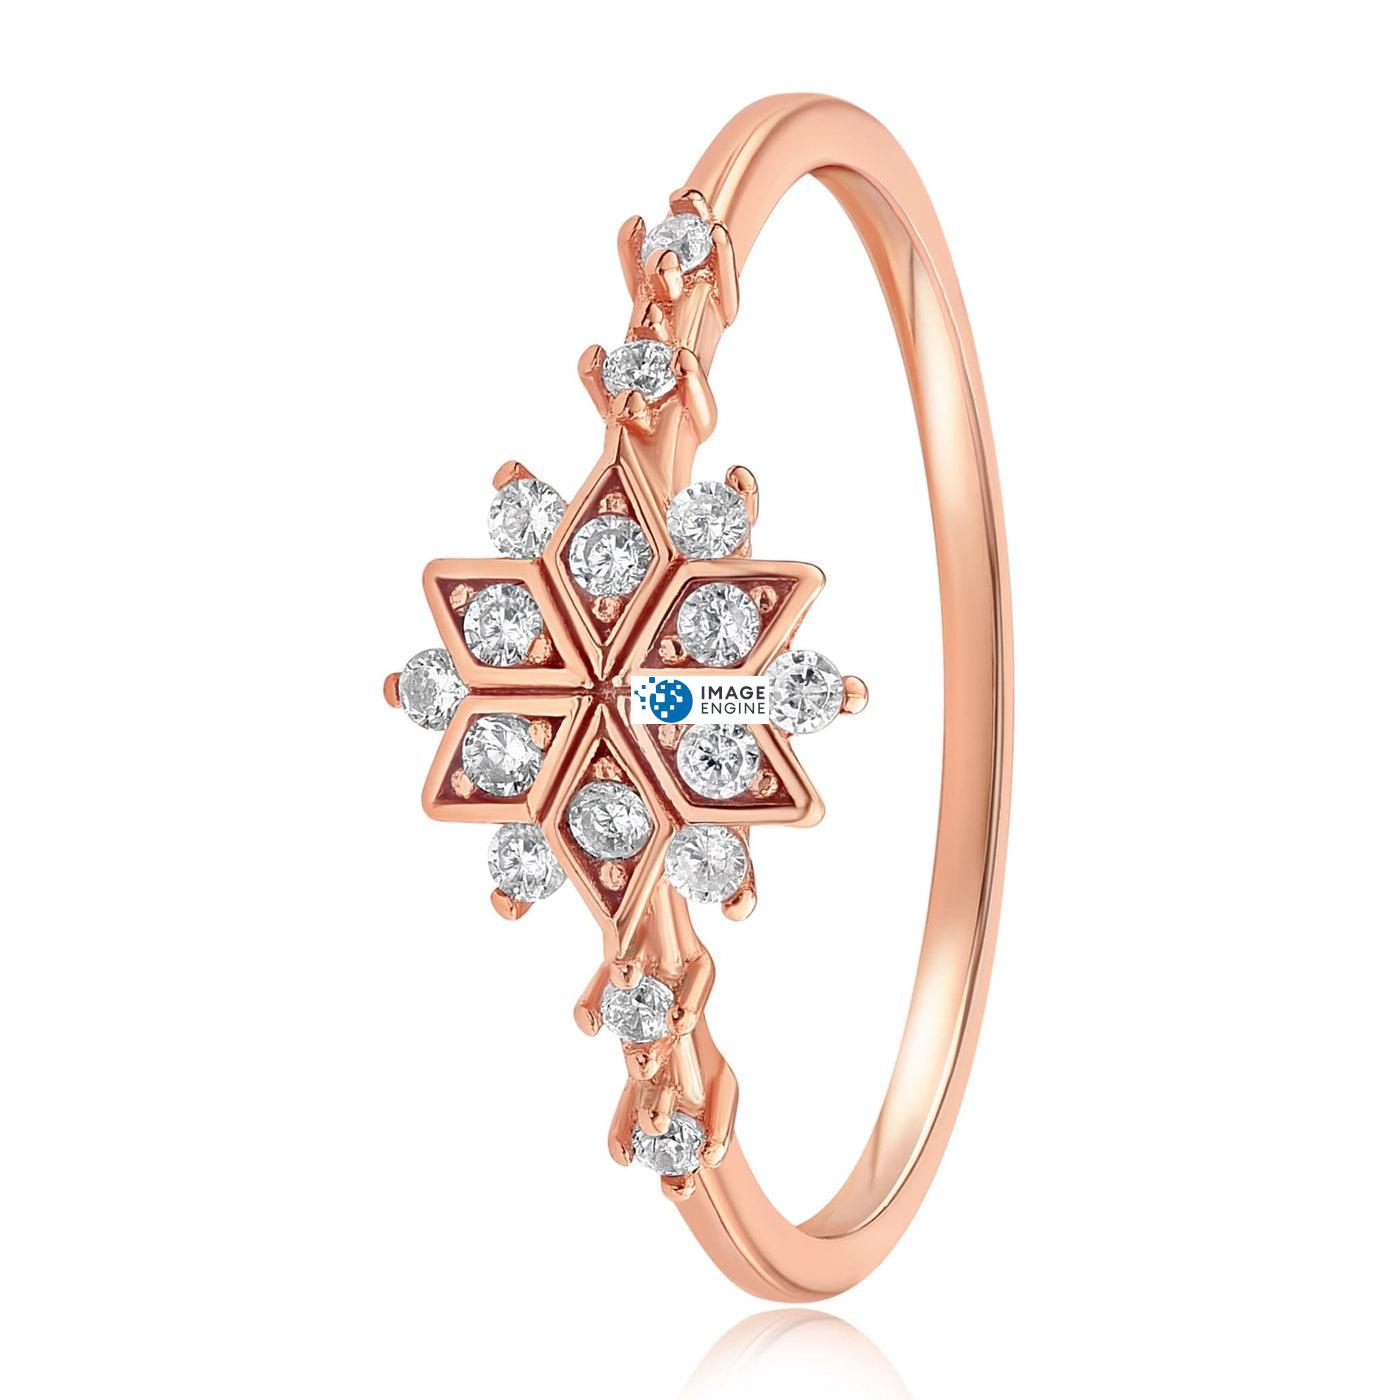 Sophia Snowflake Ring - Side View - 18K Rose Gold Vermeil